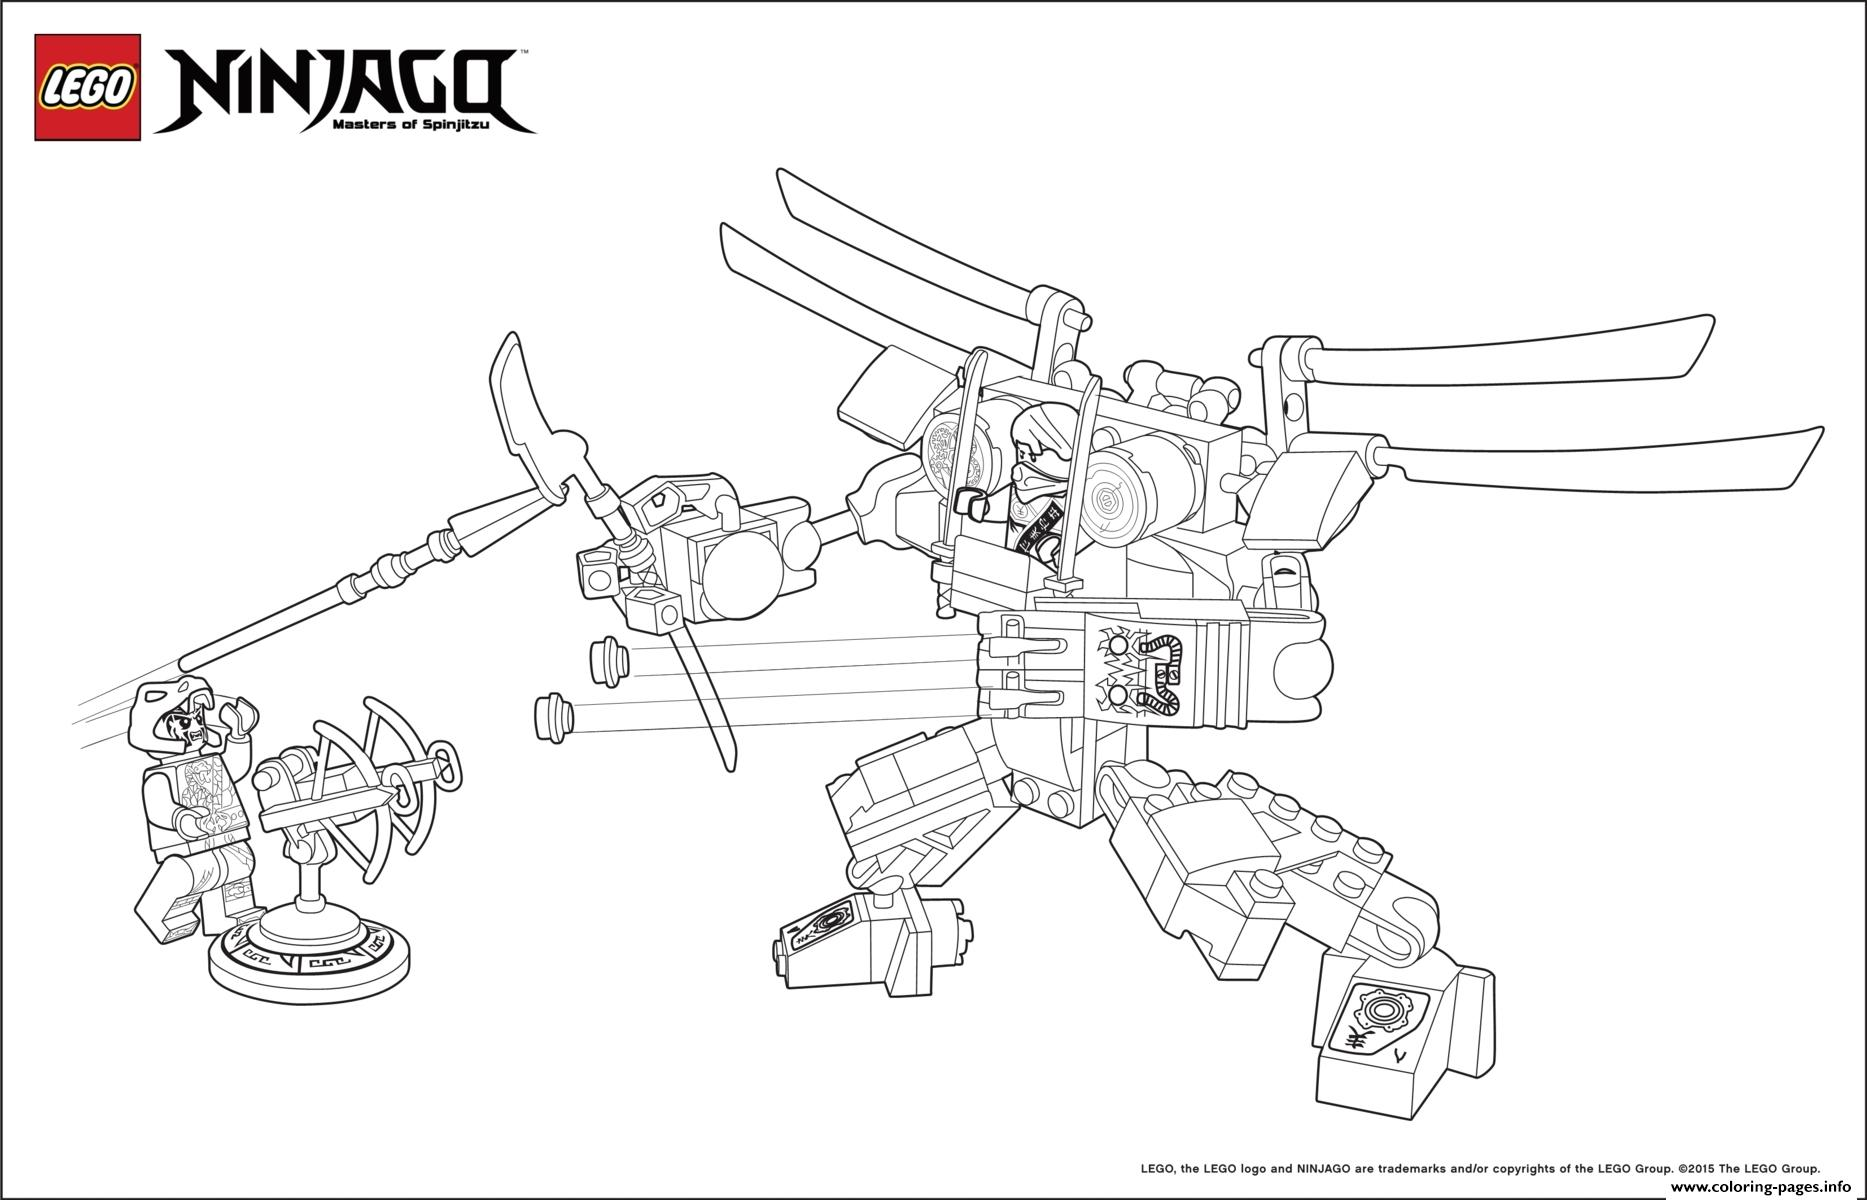 ninjago monster vs dogshank  coloring pages